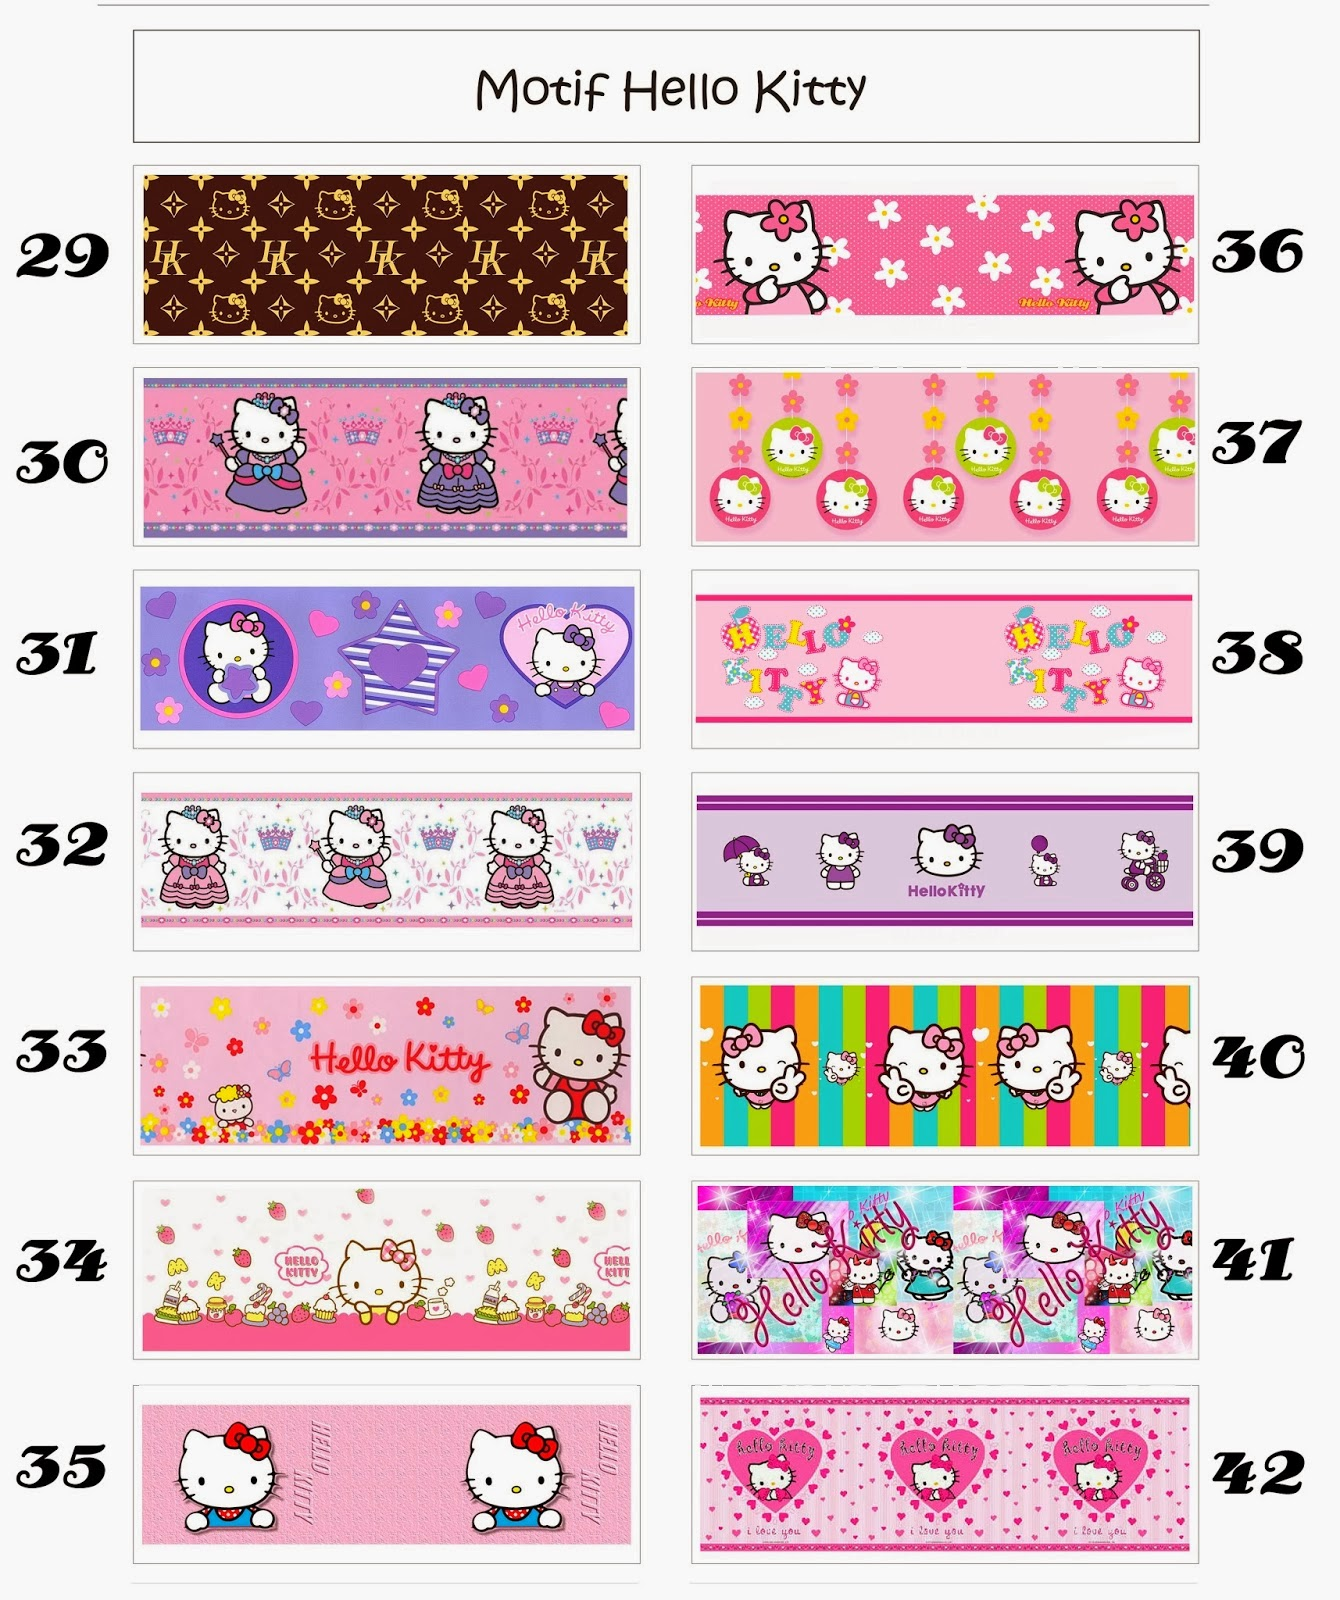 Free Wallpaper Border Dinding Motif Hello Kitty Dan